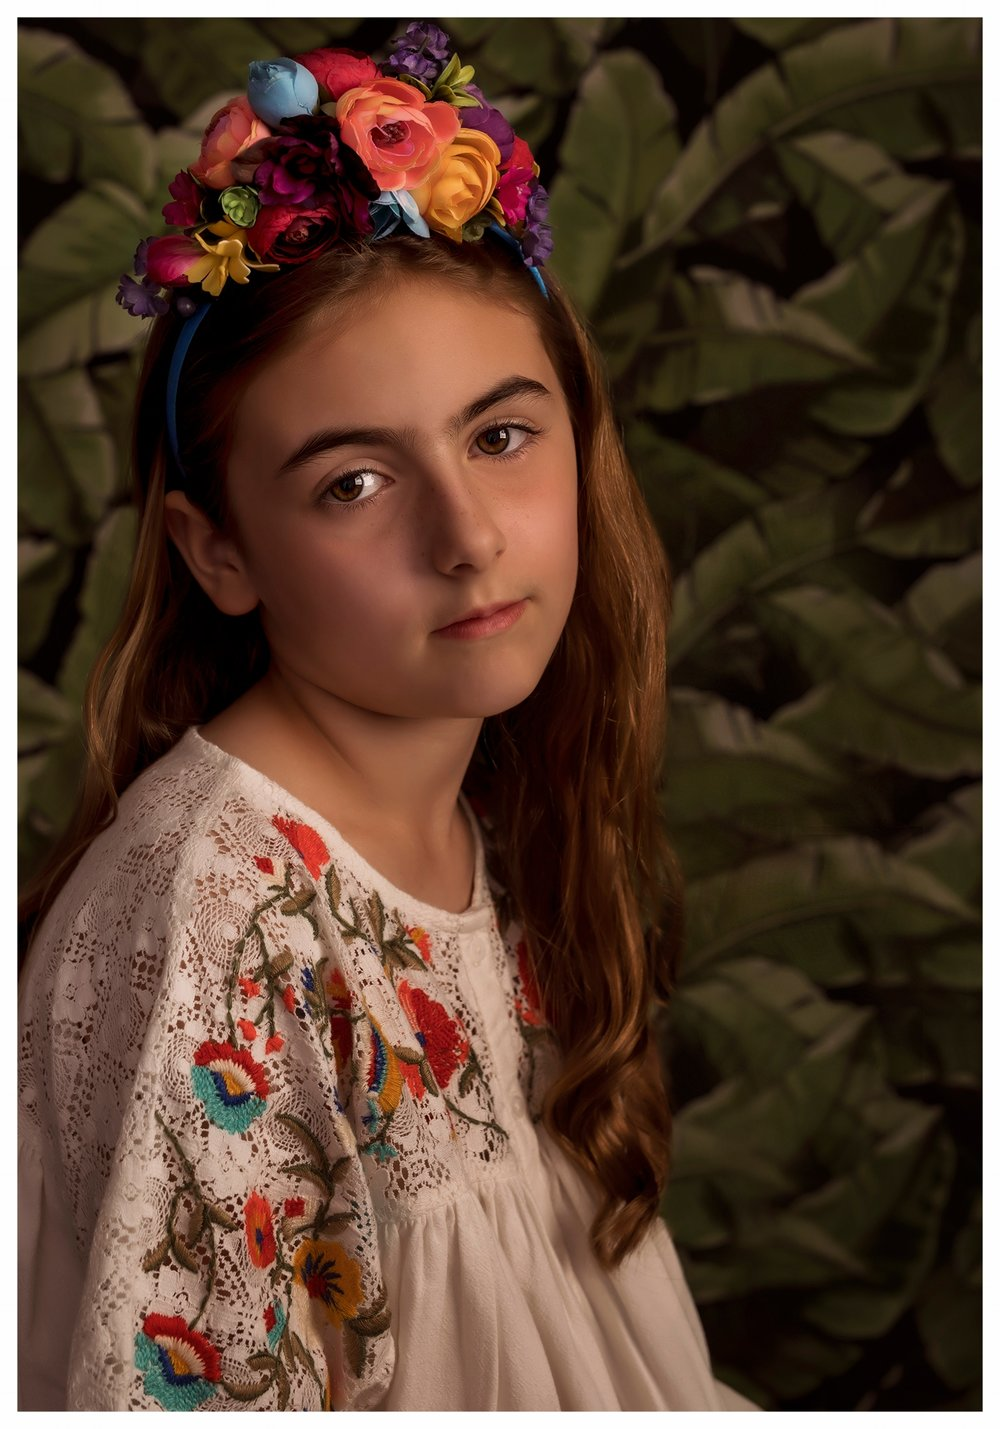 abby as frida 1 no arm ONLINE version.jpg